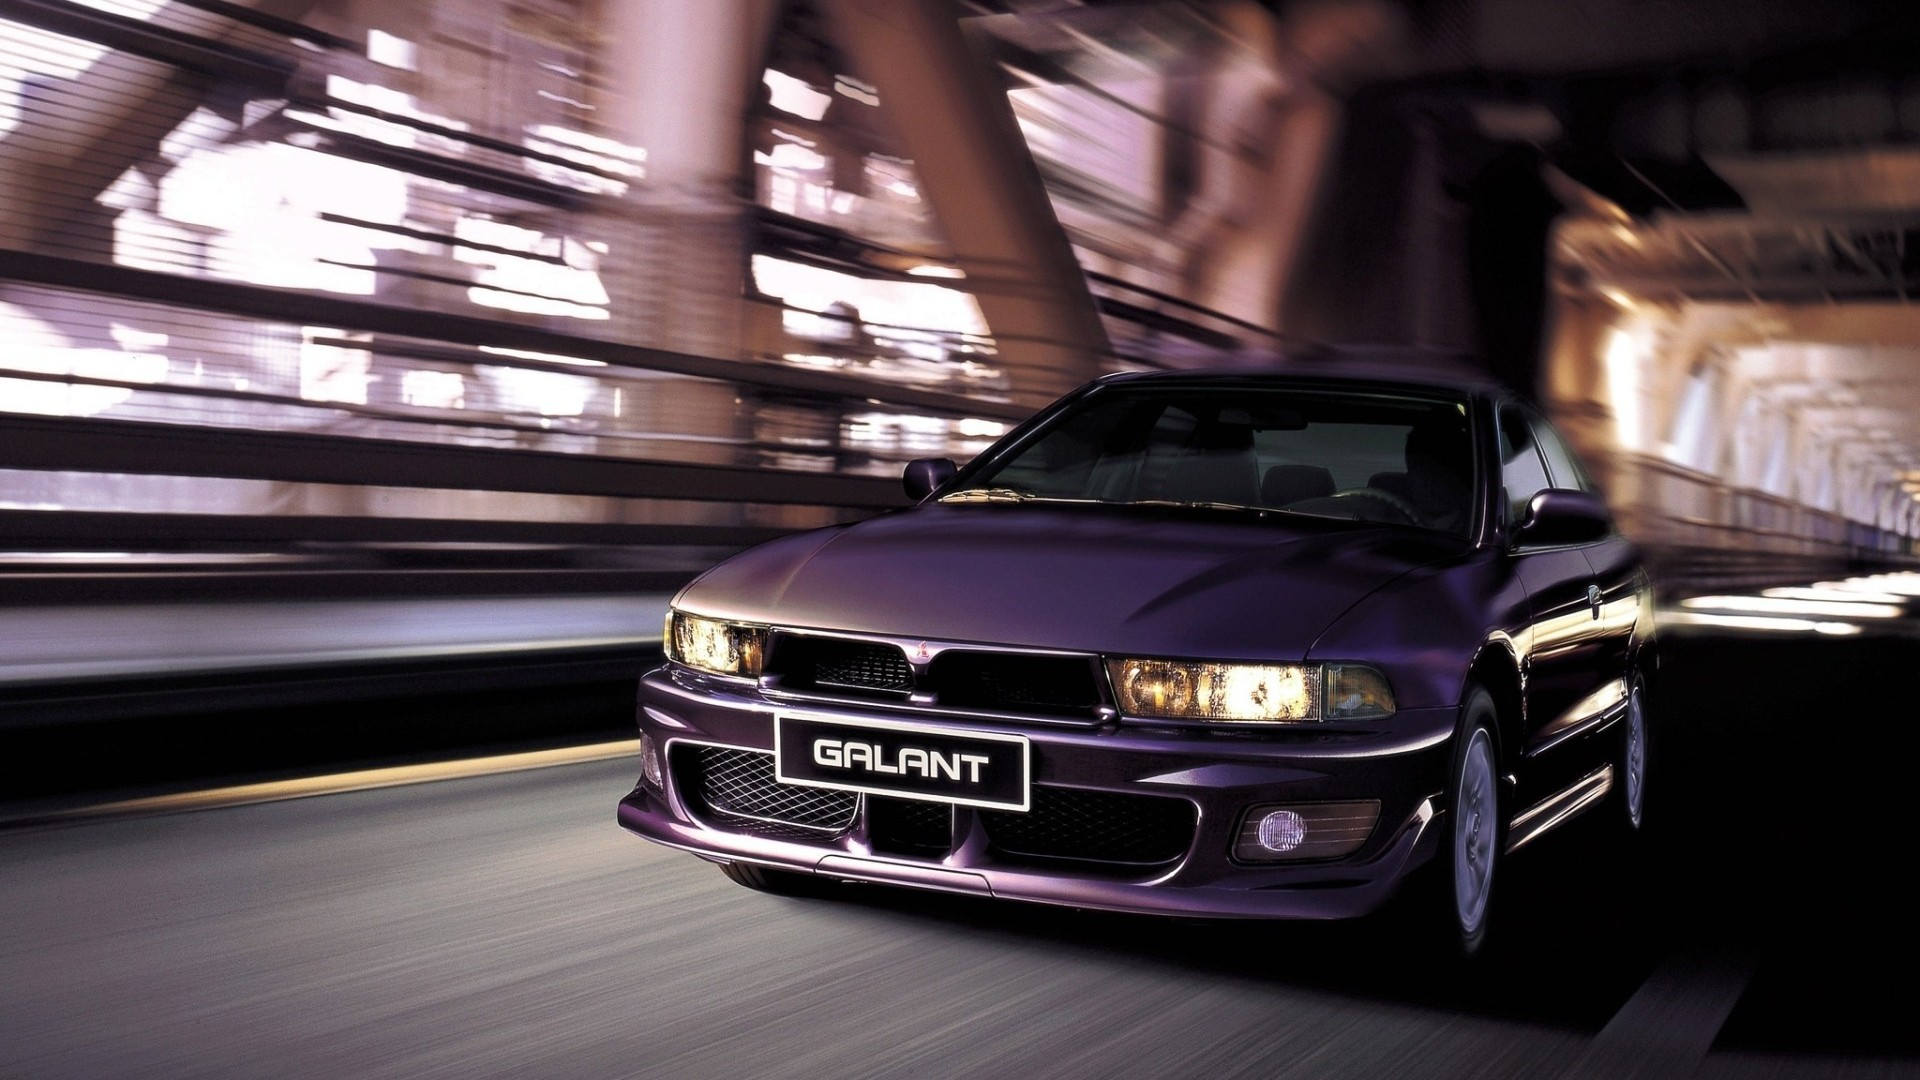 Pc Hd Car Wallpapers Free Download Jdm Japanese Domestic Market Mitsubishi Galant Cars